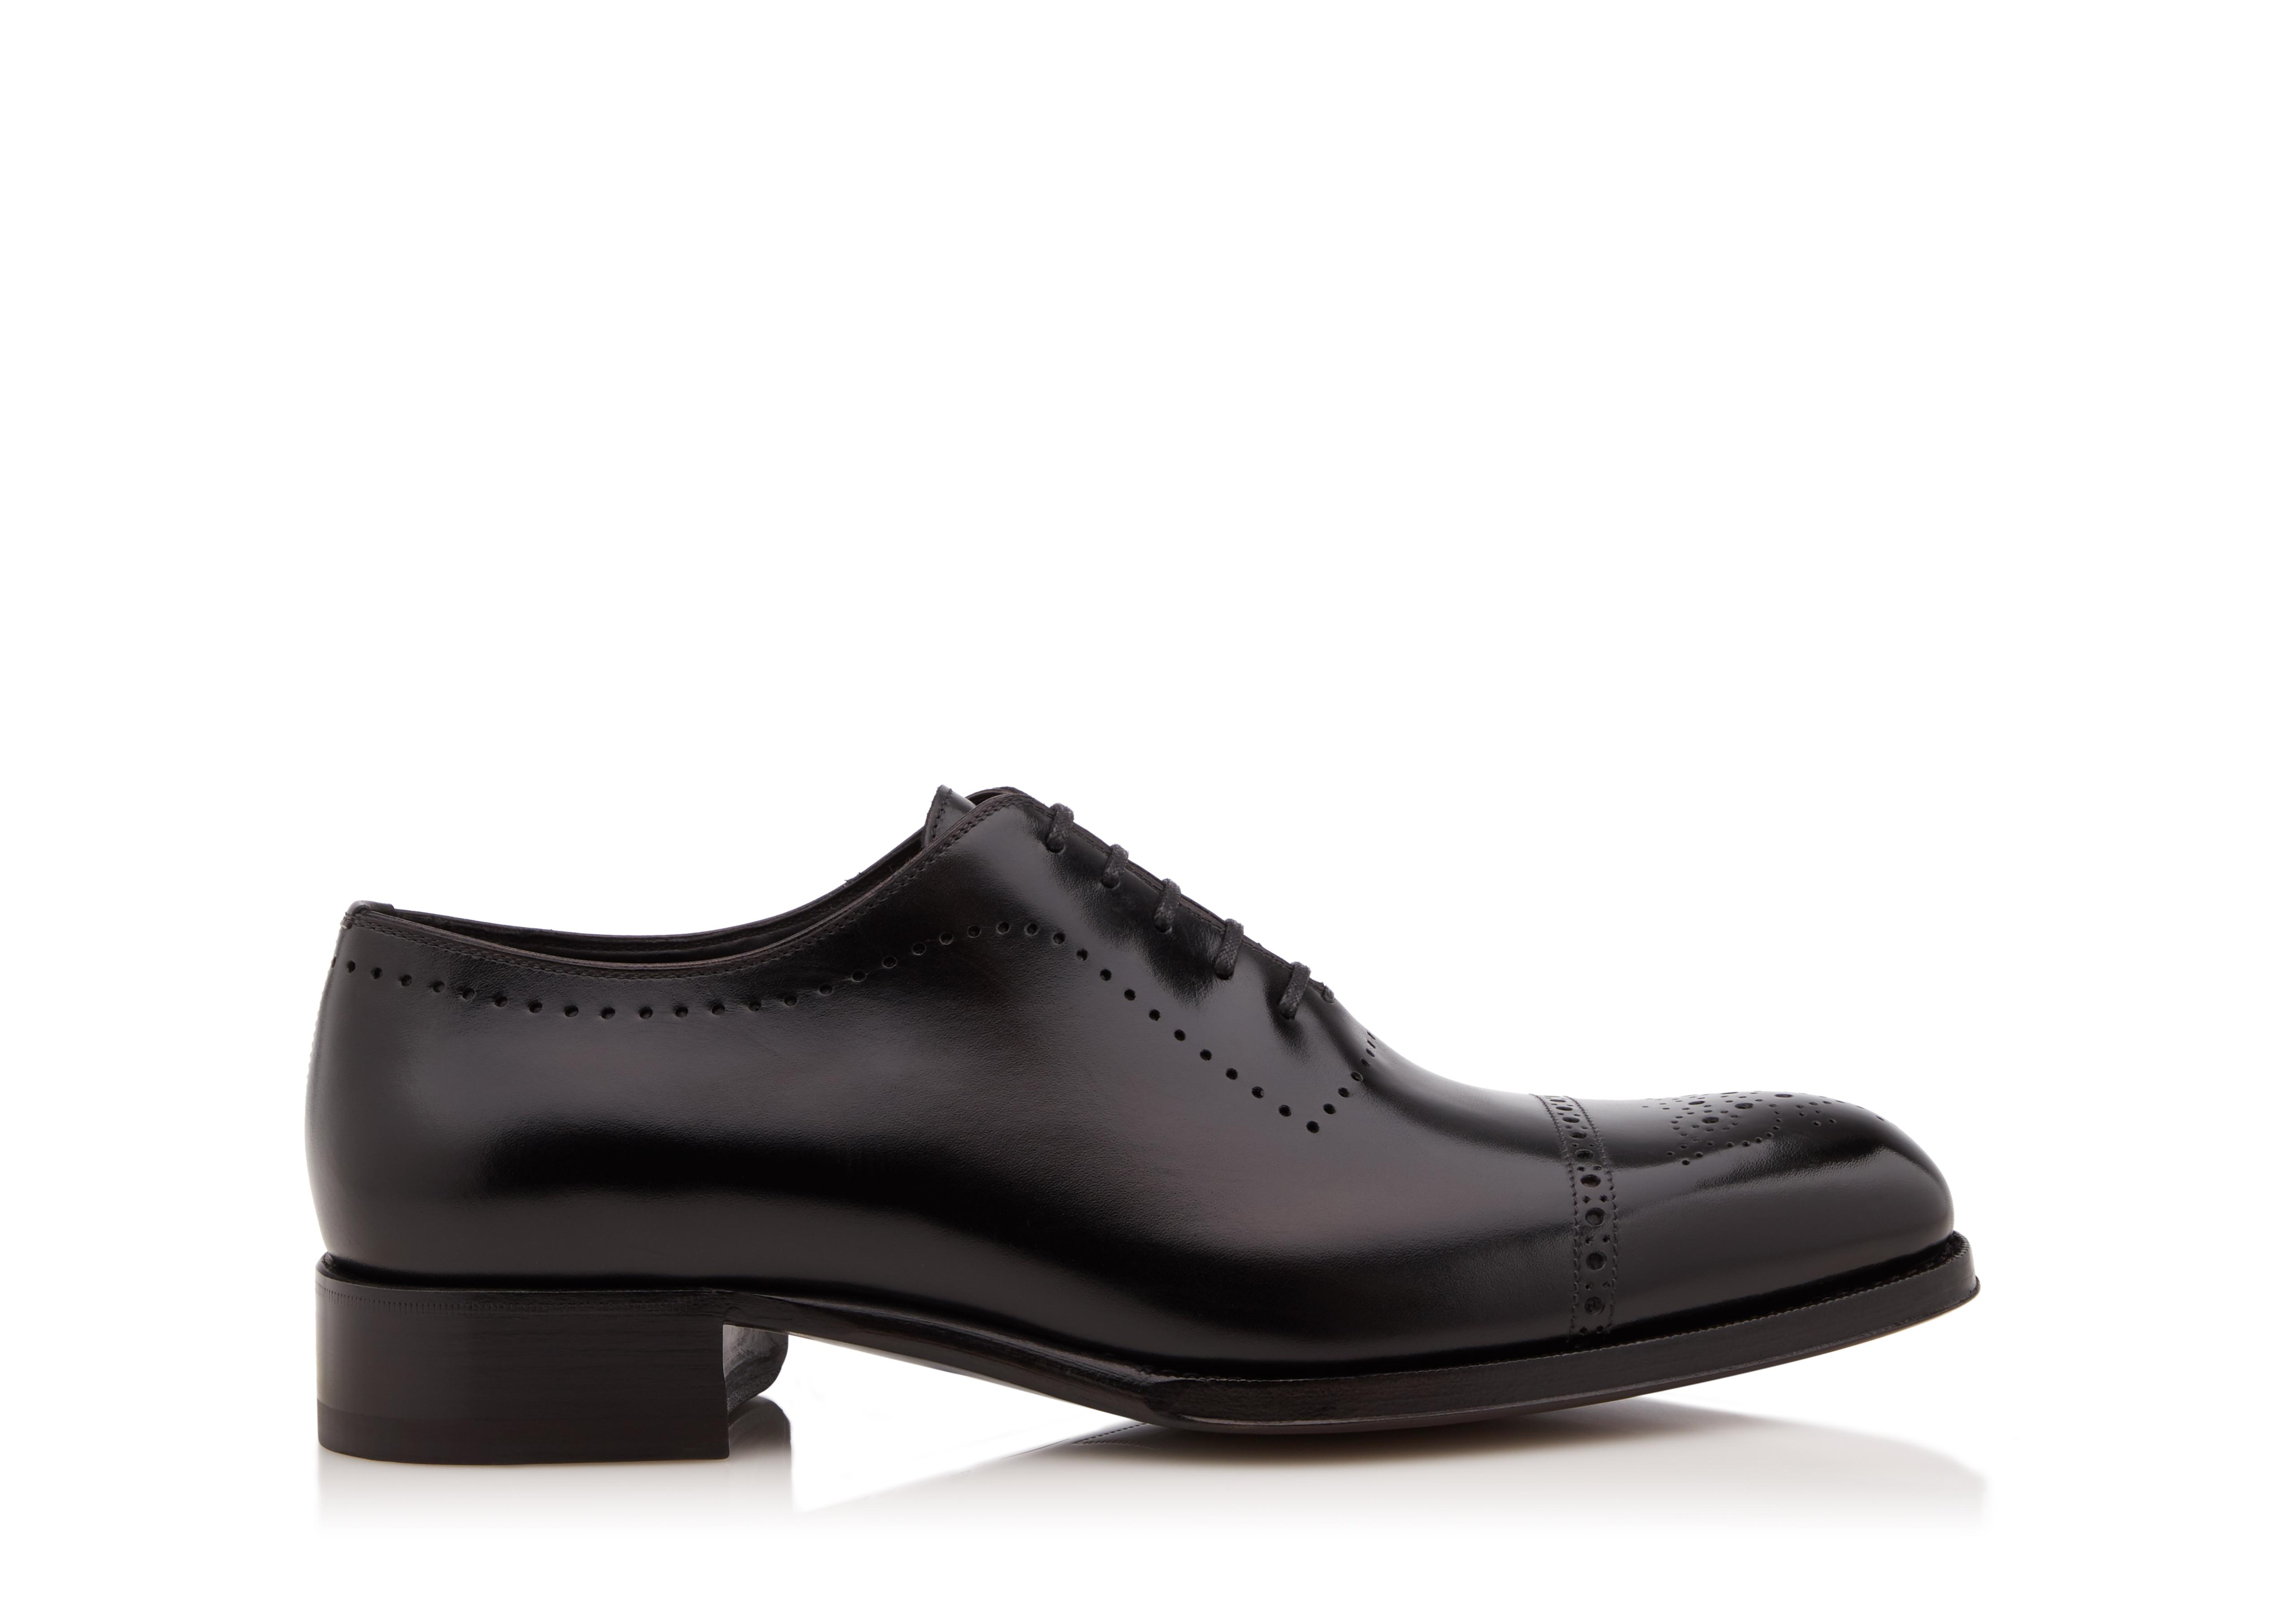 EDGAR OXFORD BROGUE A thumbnail